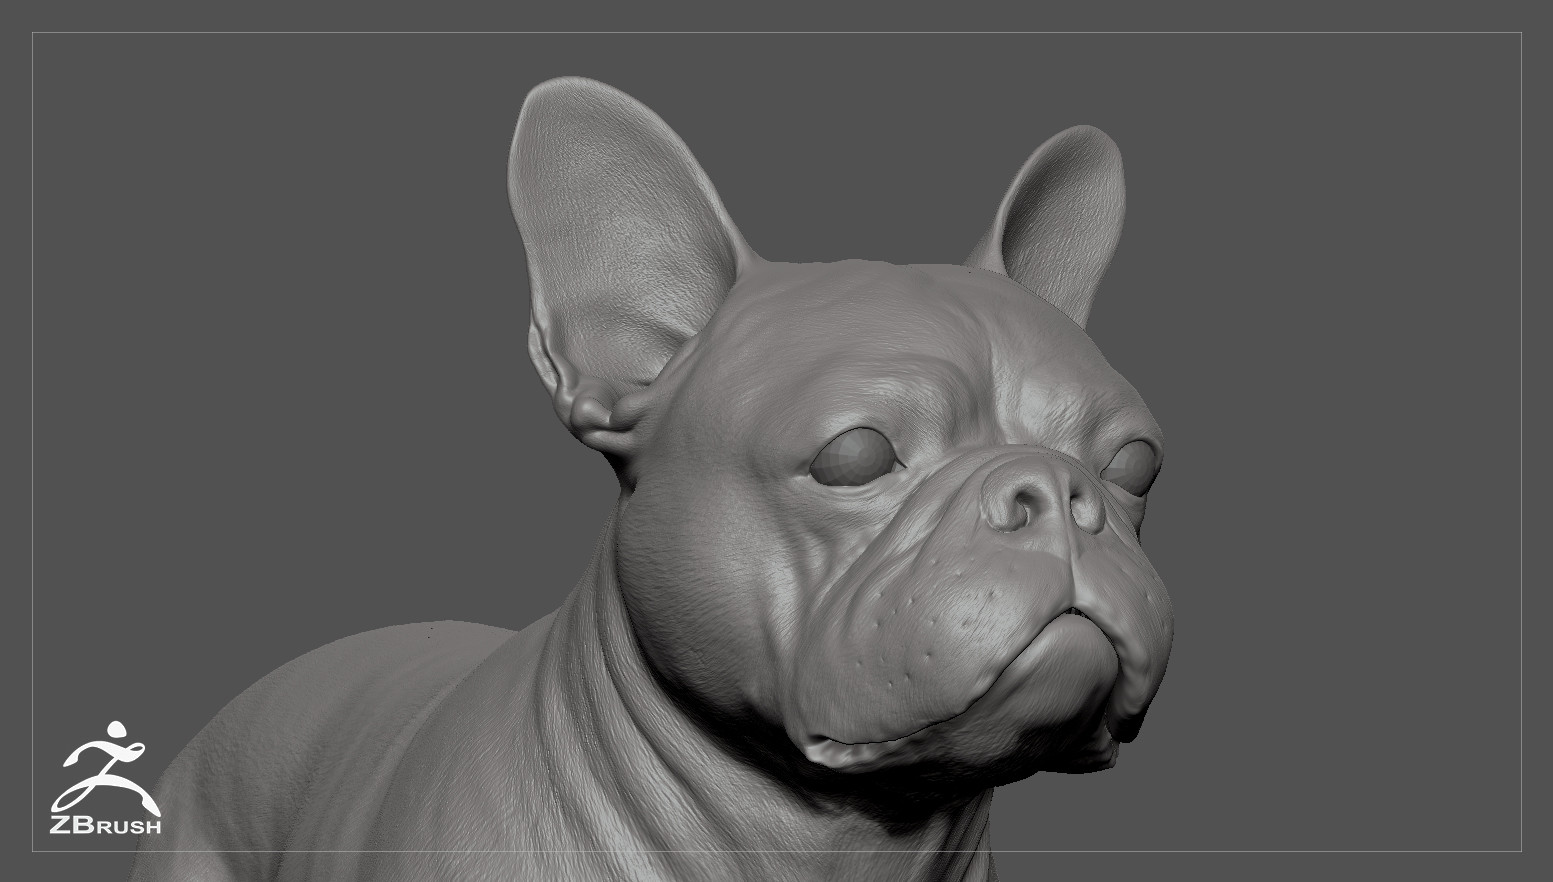 Alex lashko frenchbulldog by alexlashko zbrush 05